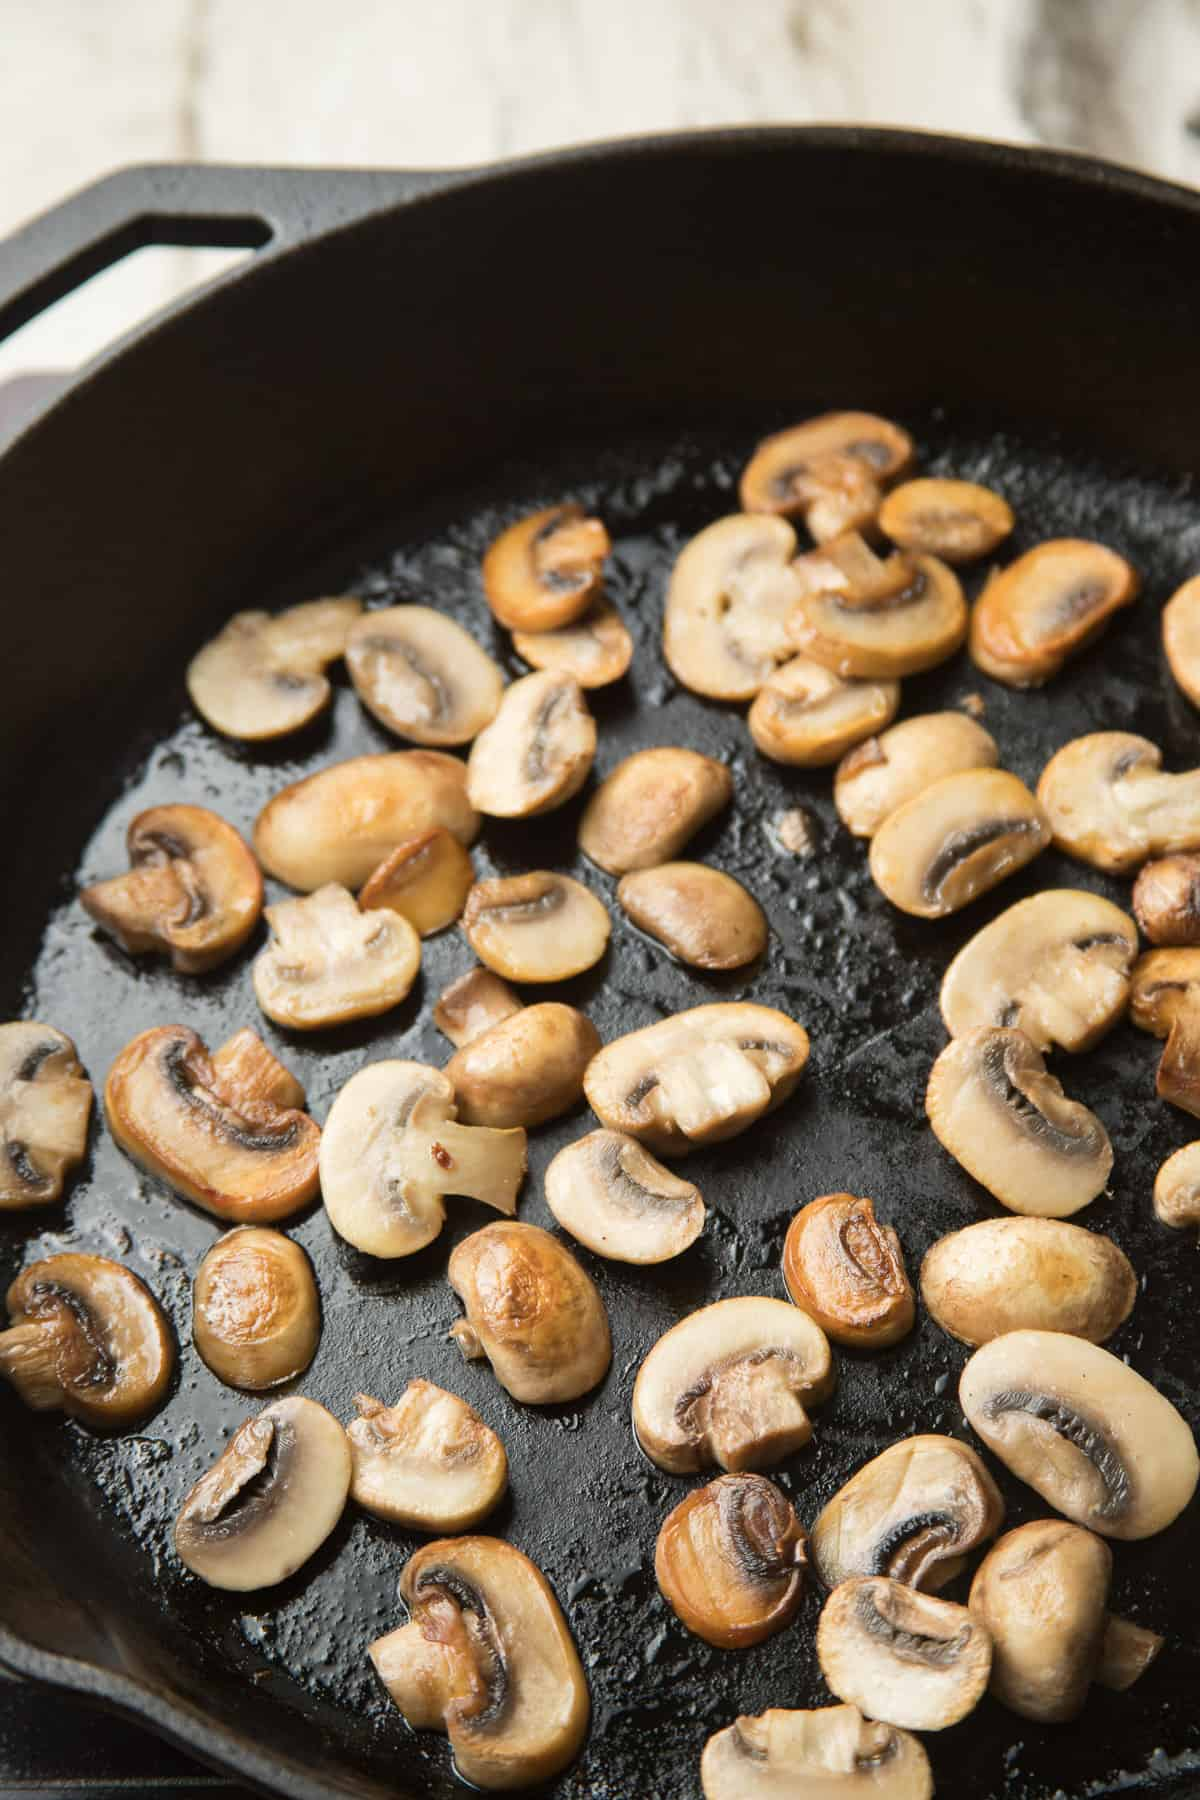 Mushrooms sizzling in a skillet.